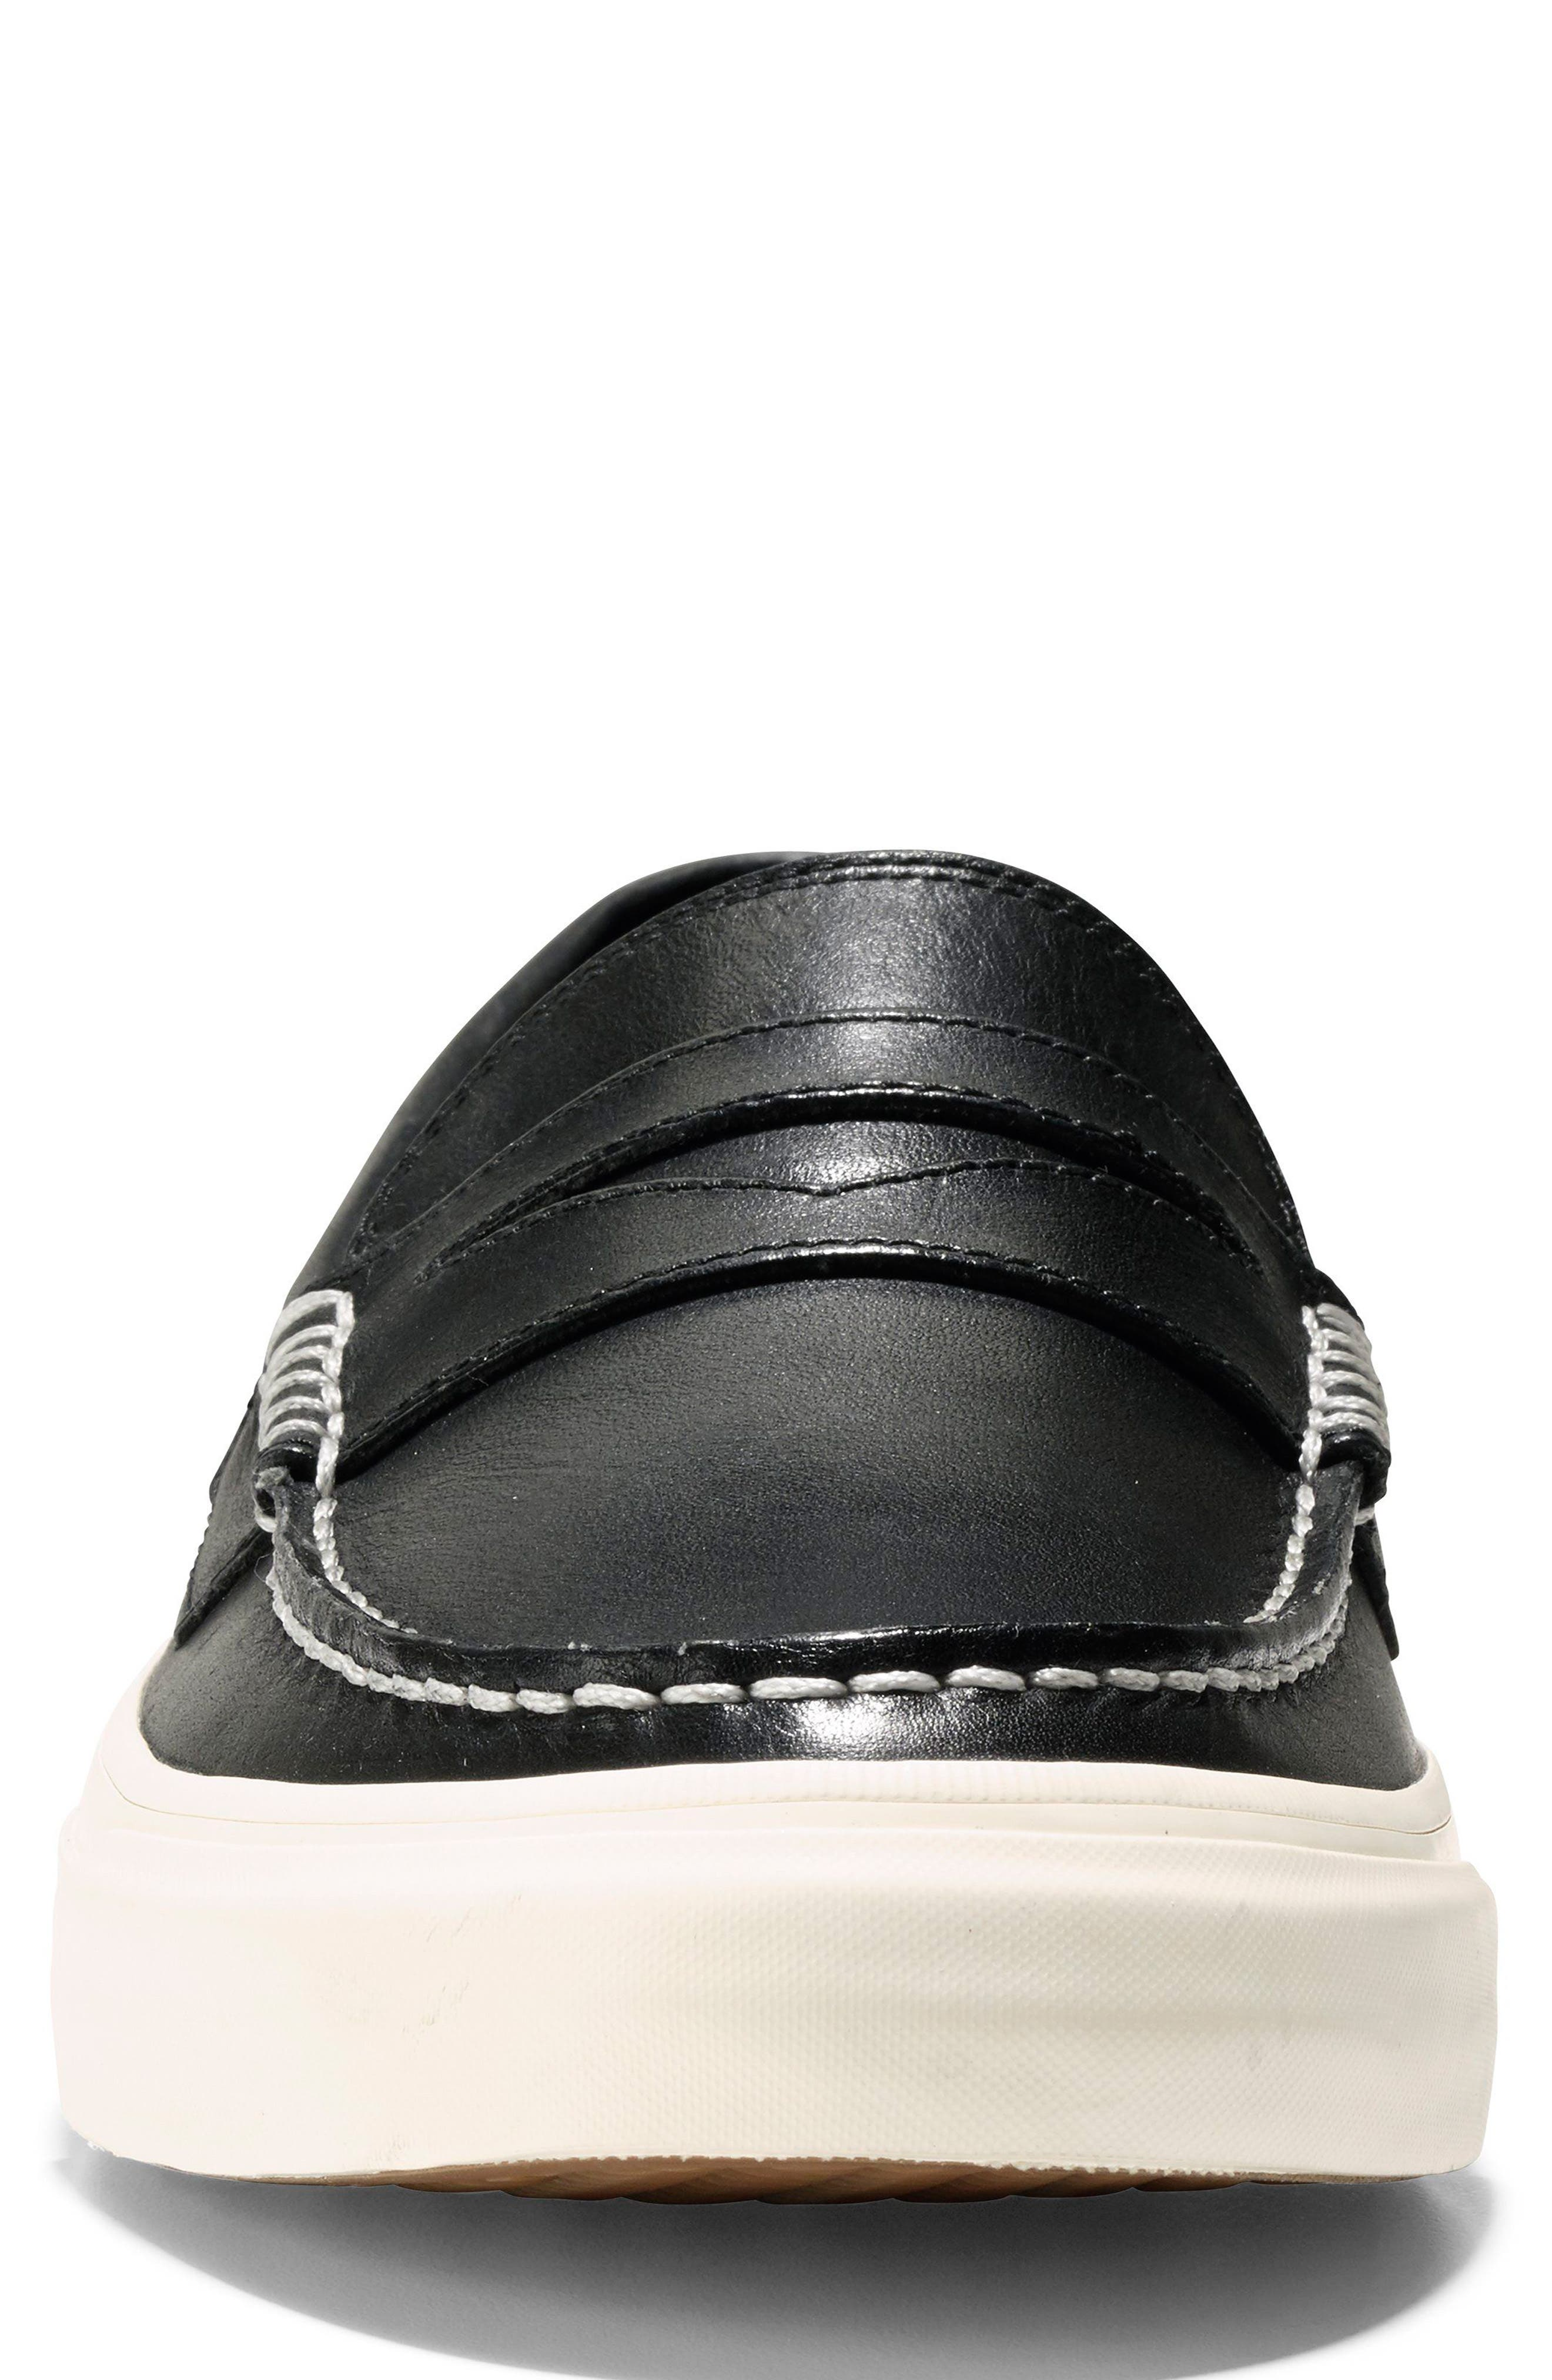 Pinch Weekend LX Penny Loafer,                             Alternate thumbnail 4, color,                             Black/ White